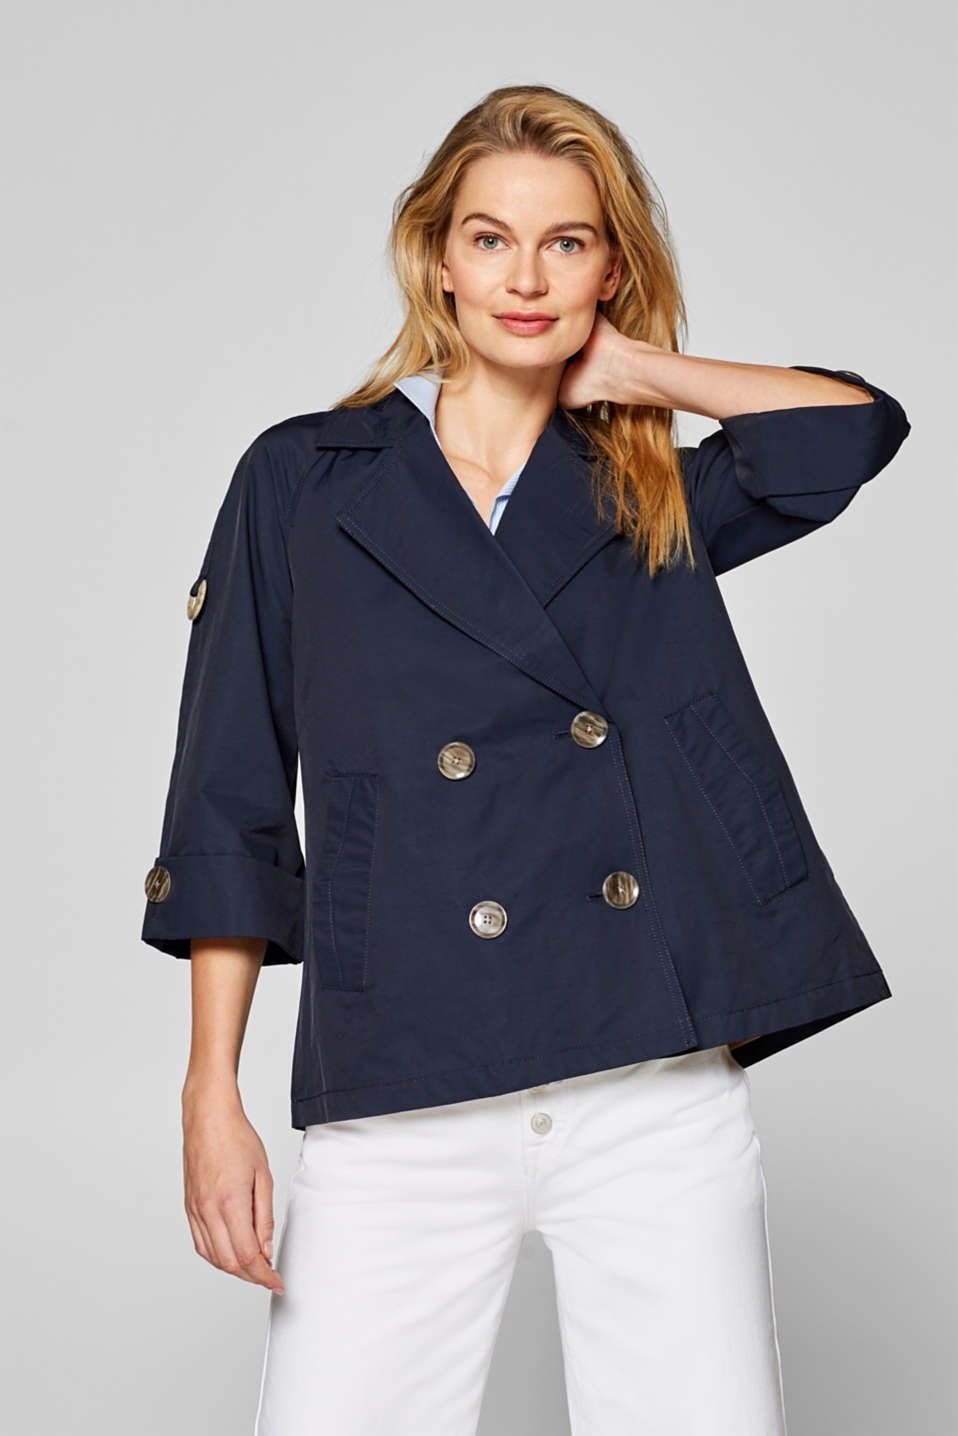 Esprit - Lightweight pea jacket with three-quarter length sleeves